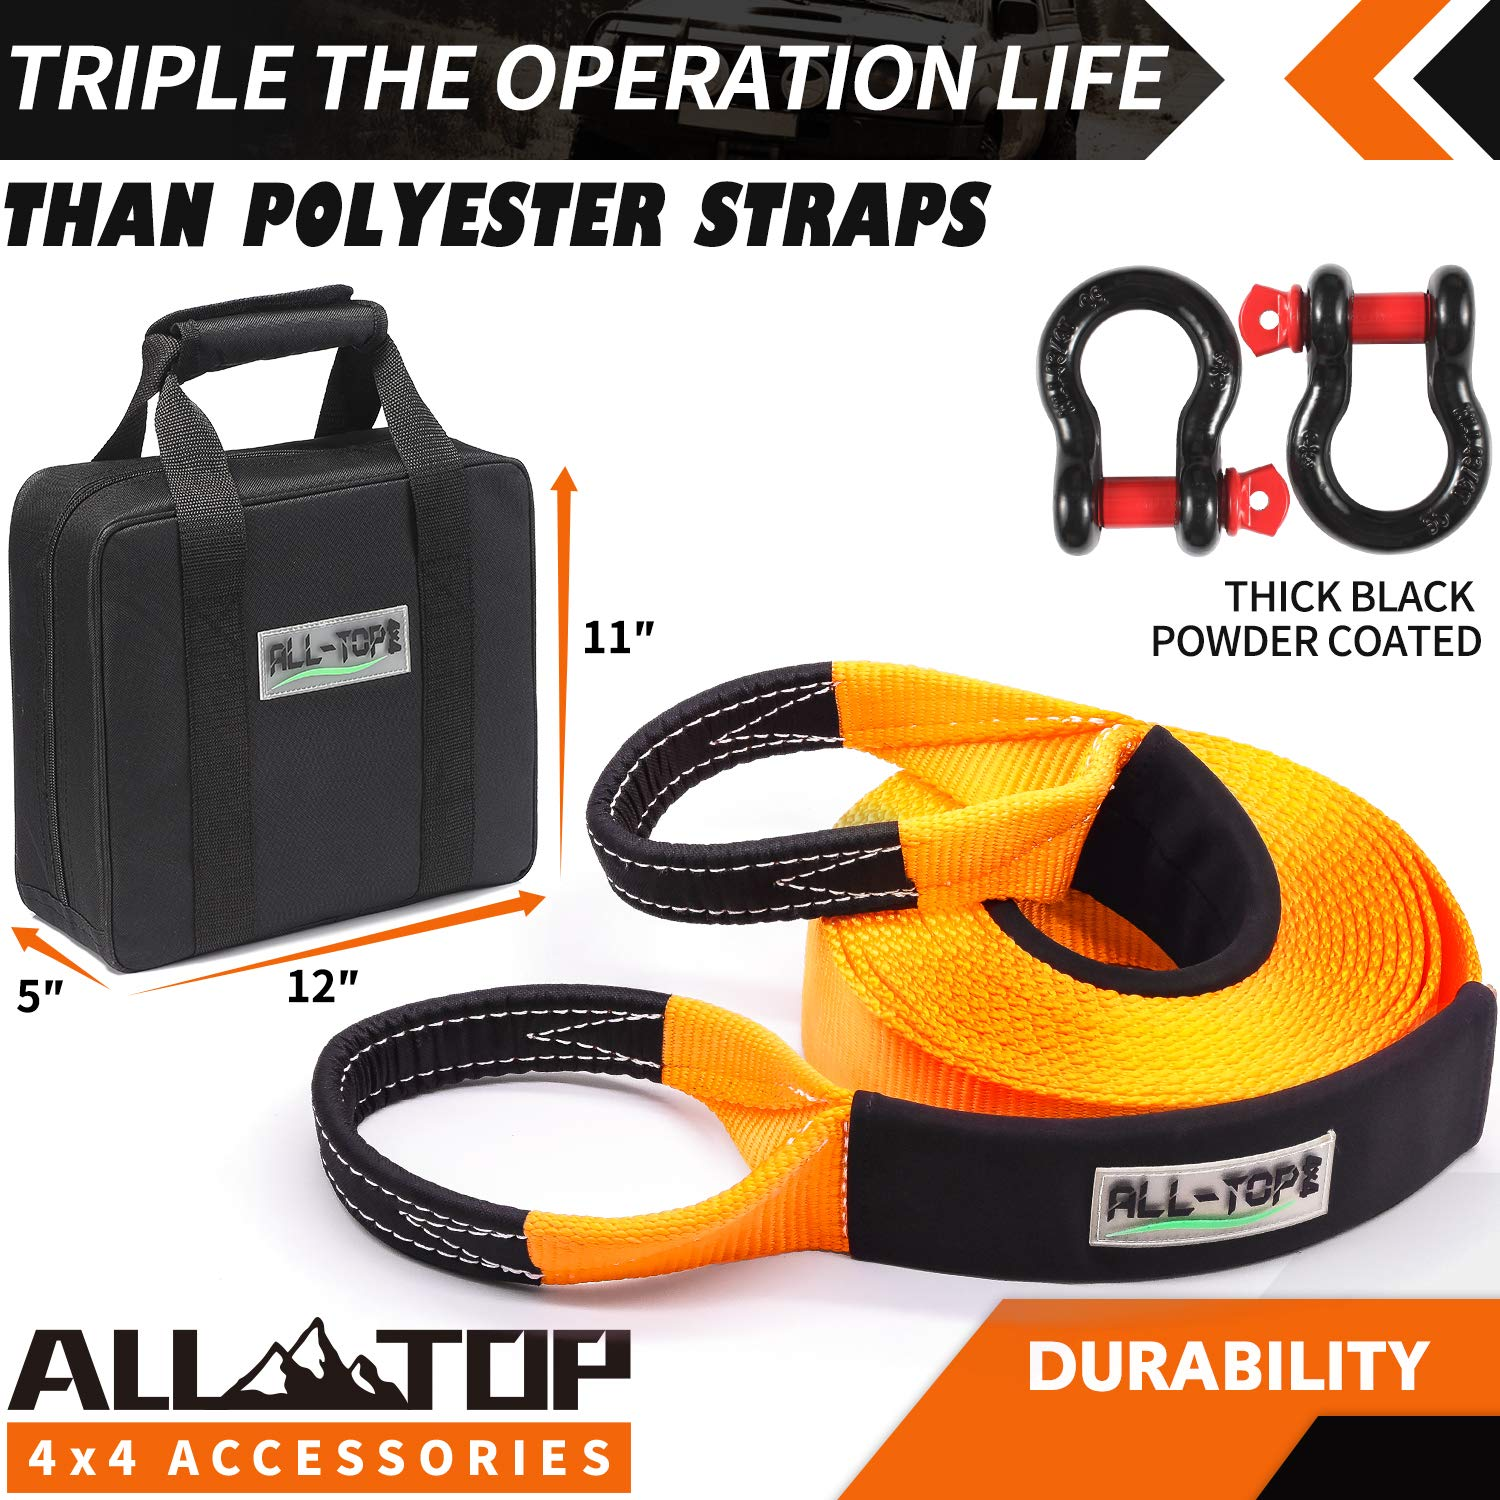 2pcs ALL-TOP Heavy Duty Tow Strap Recovery Kit : 3 inch x 30 ft + Storage Bag 100/% Nylon and 22/% Elongation Snatch Strap 32.000 lbs 3//4 Heavy Duty D Ring Shackles